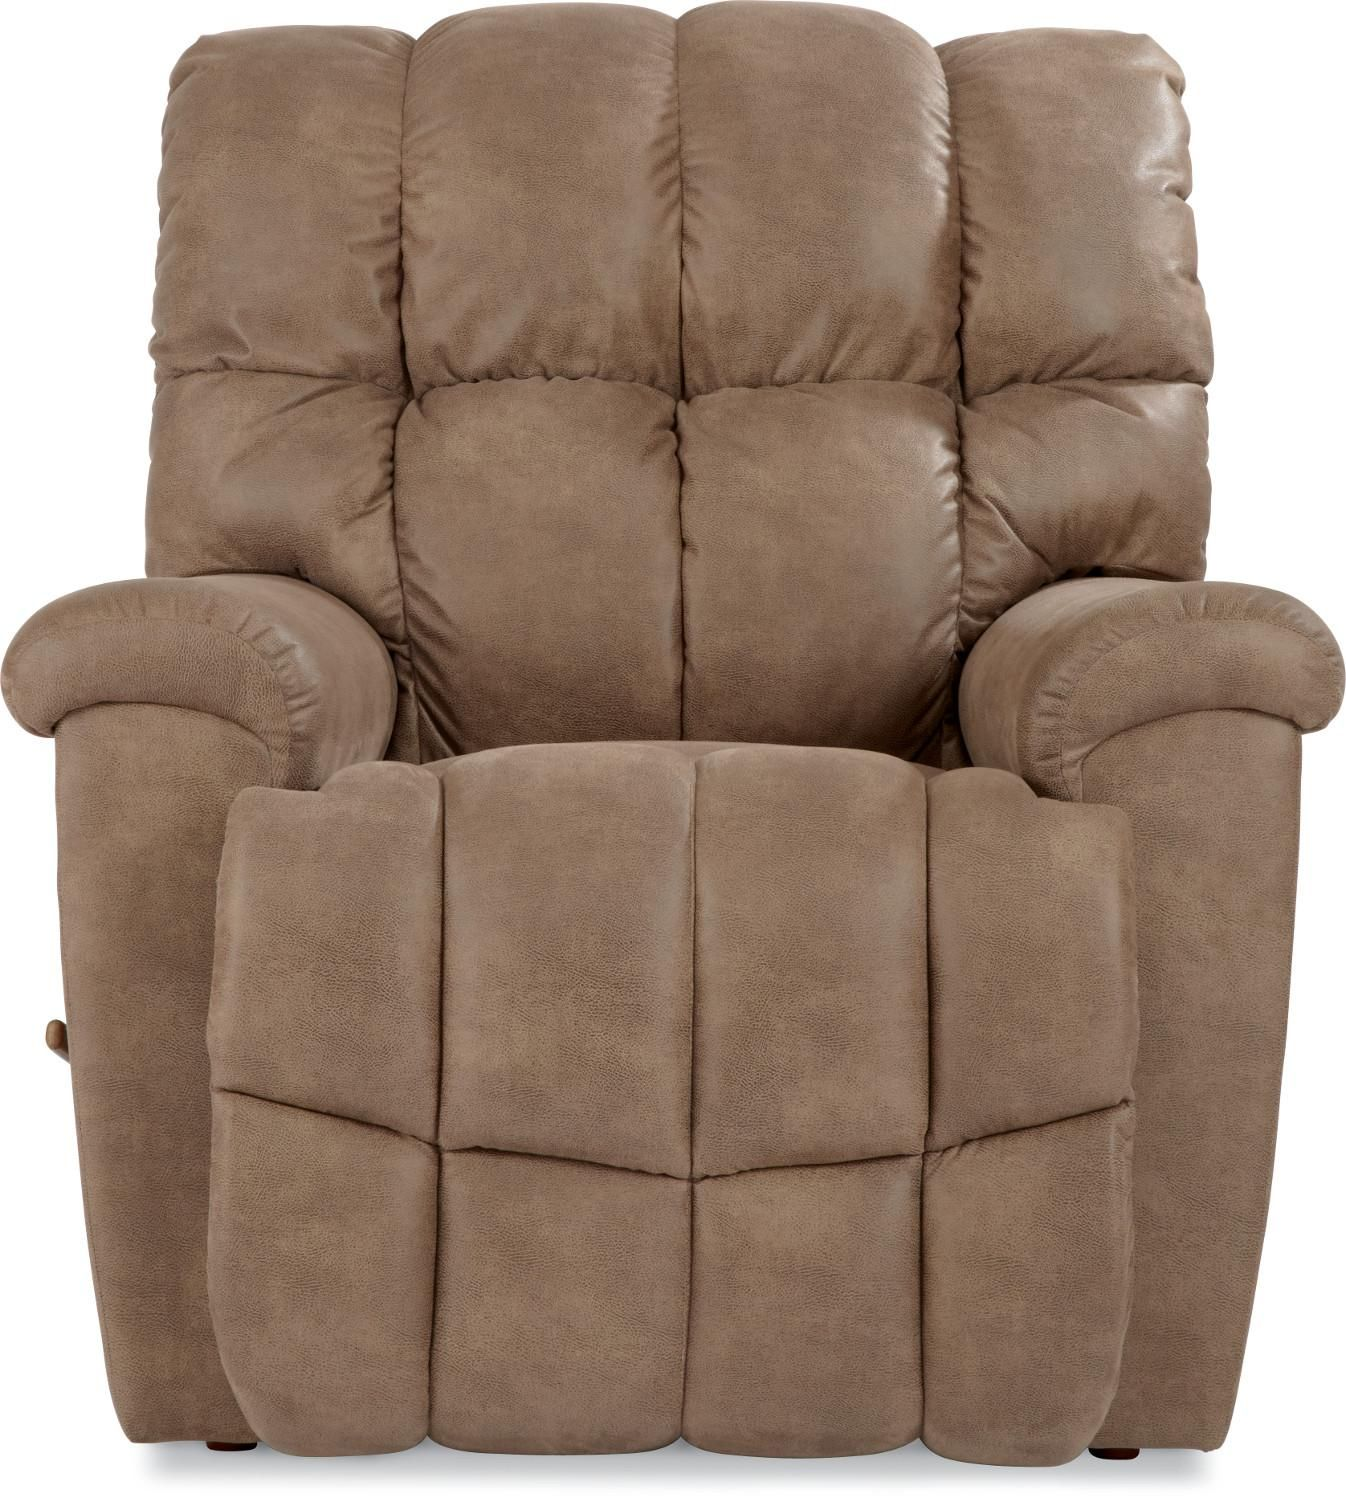 La z boy cool power leather 2 seater with 2 reclining chairs - Recliners Brutus Extra Large Recliner By La Z Boy